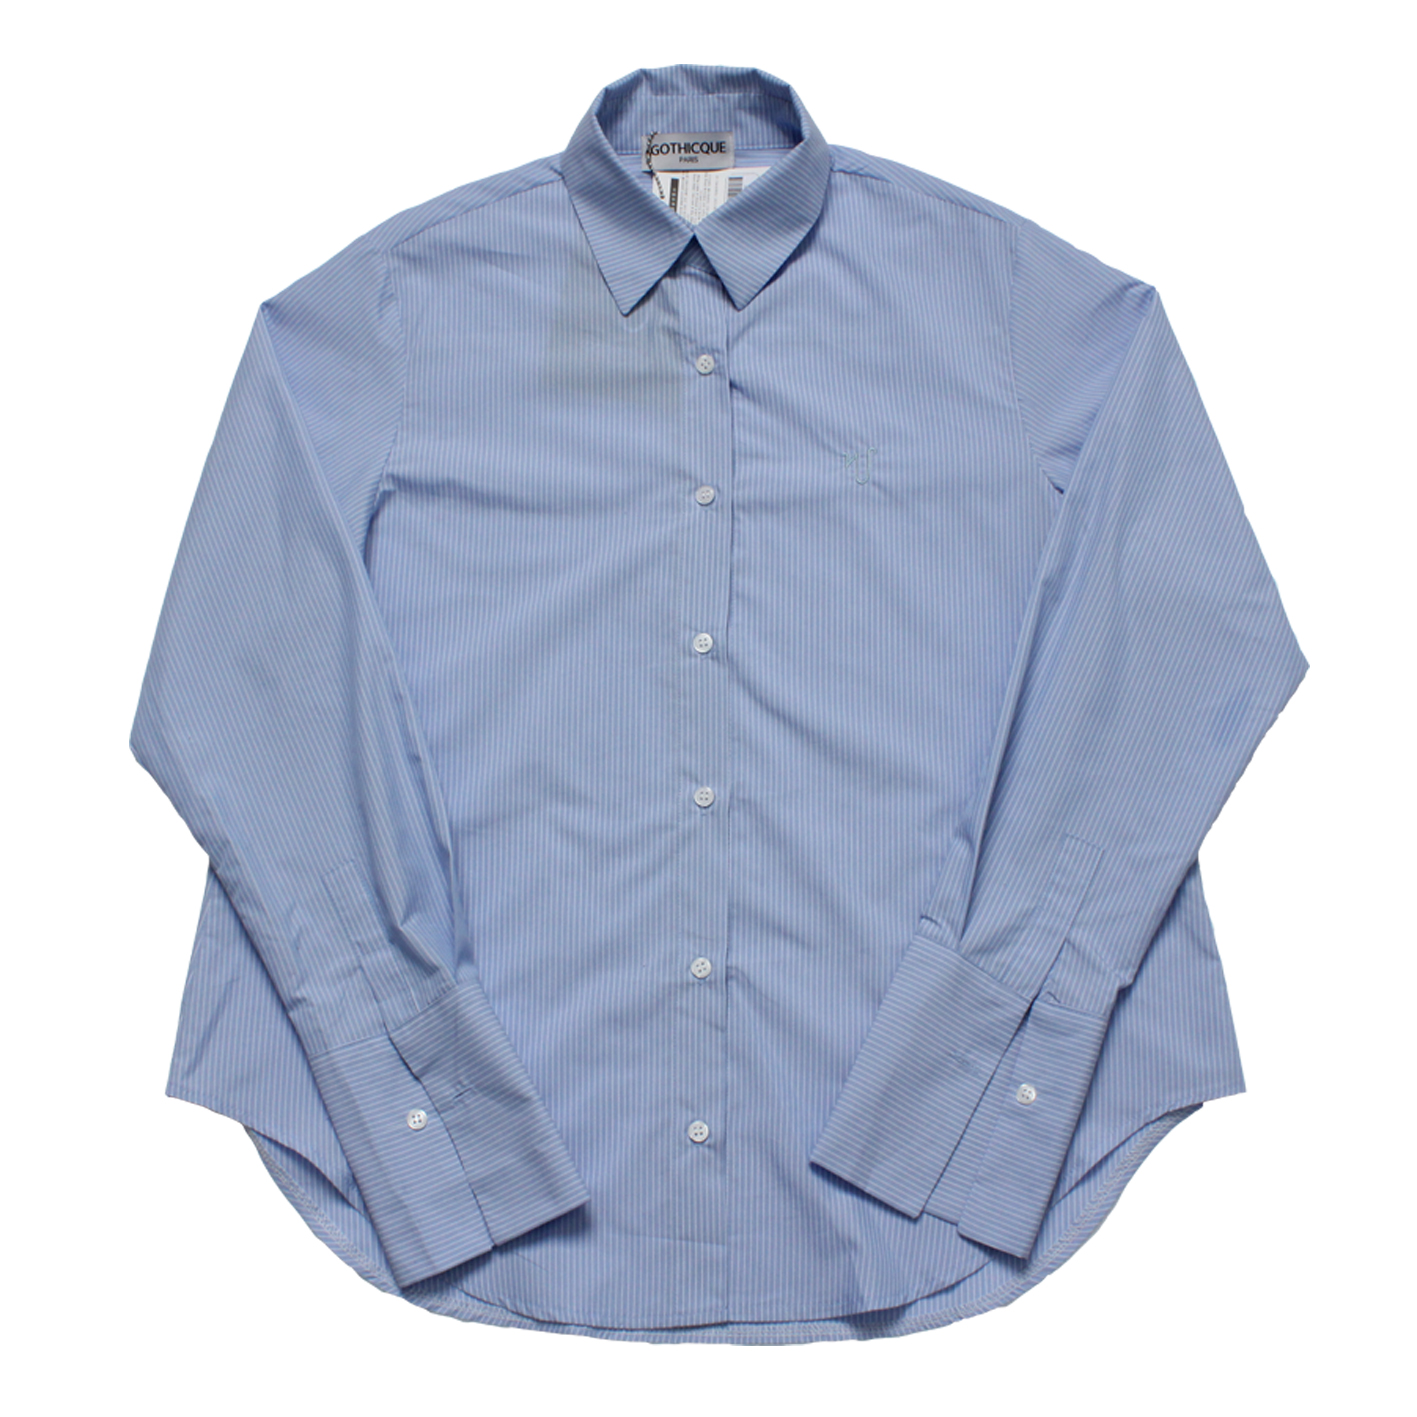 [고디크]BLUE STRIPE SHIRTS [G8SA51F61]